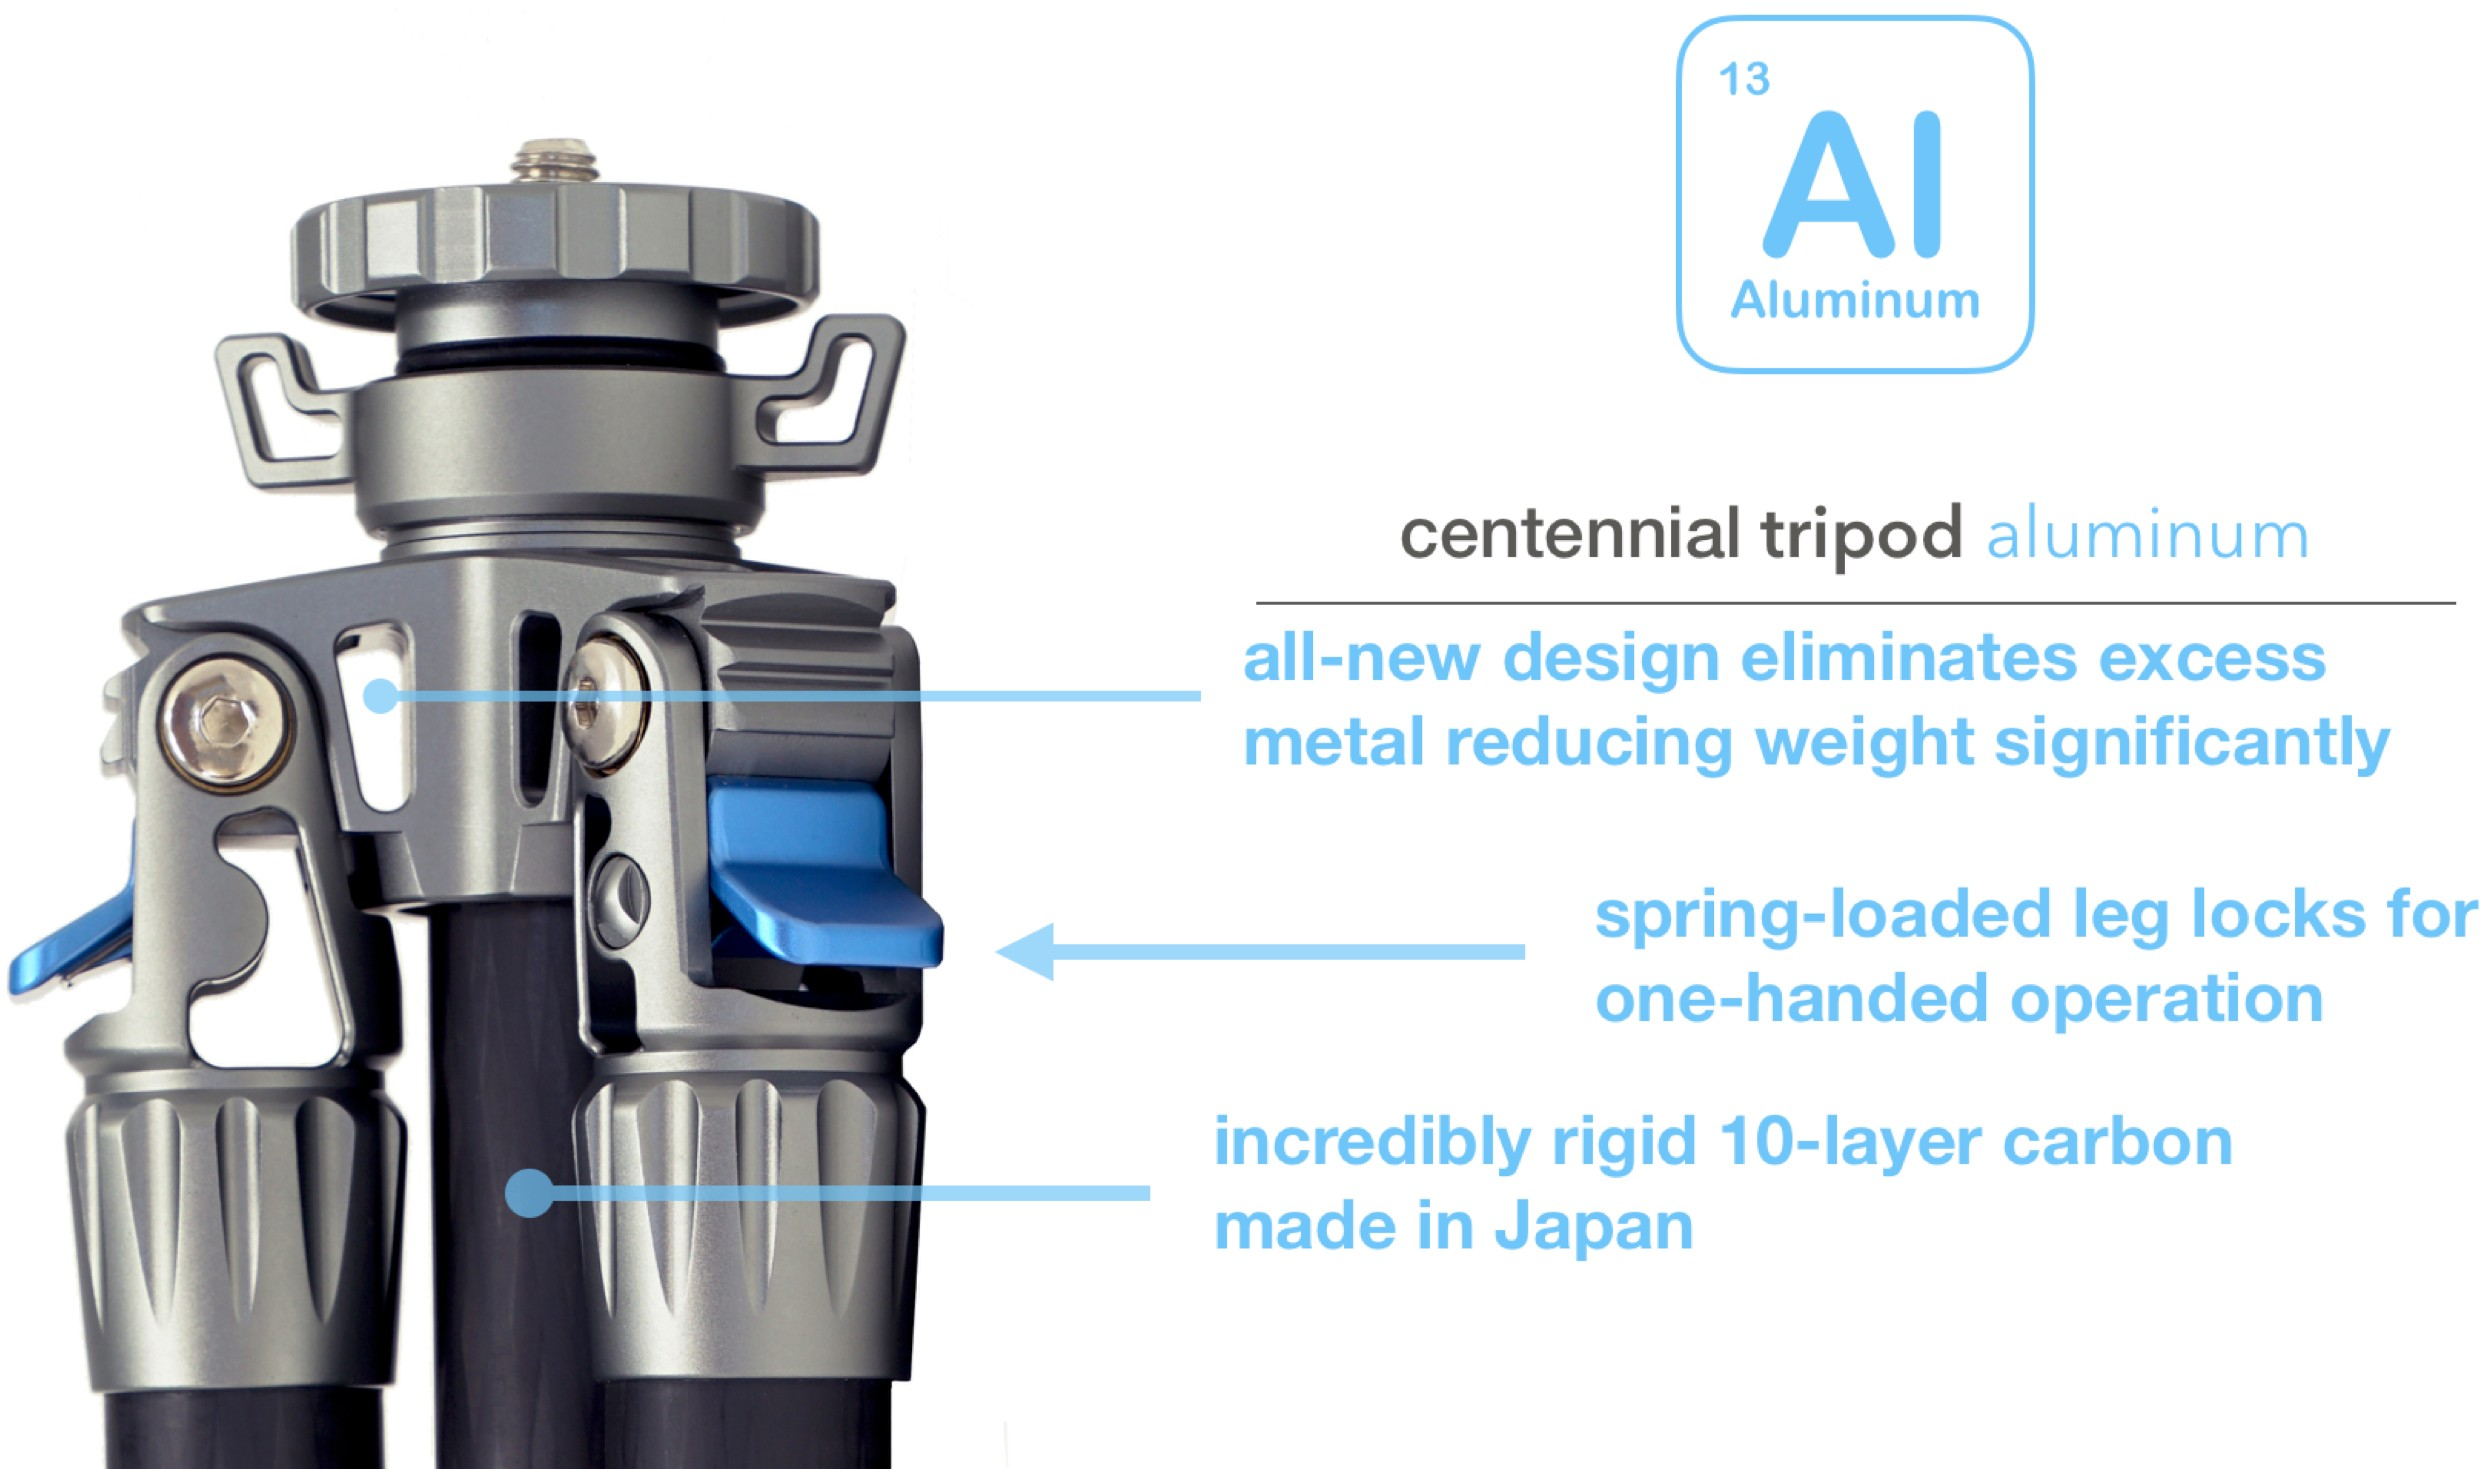 word image 7 - Kickstarter: New Startup Launches World's First Titanium Tripod & Ballhead